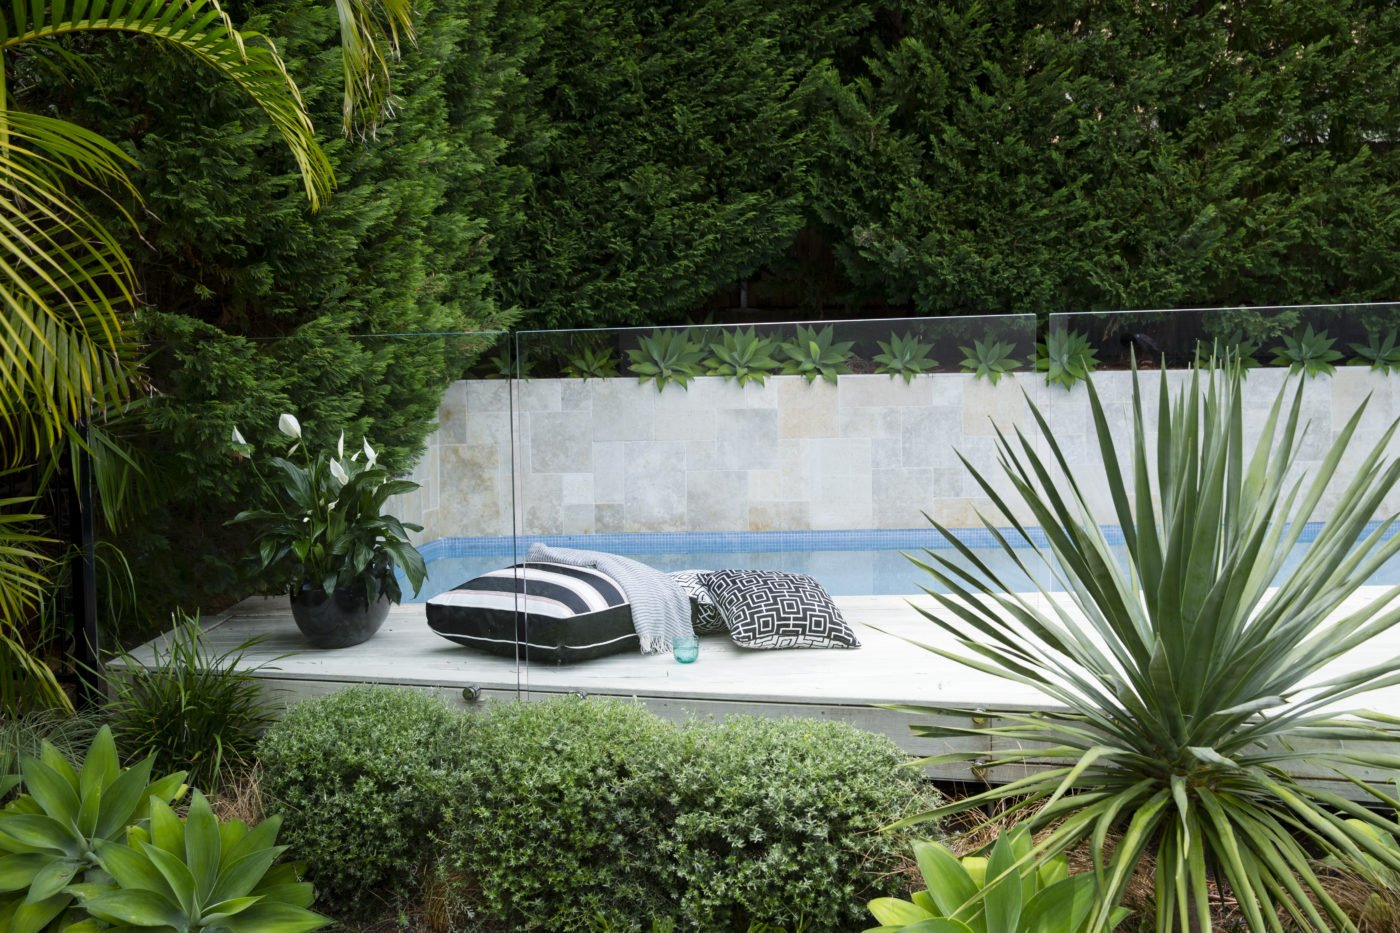 In-ground pool with cushions and greenery next to it